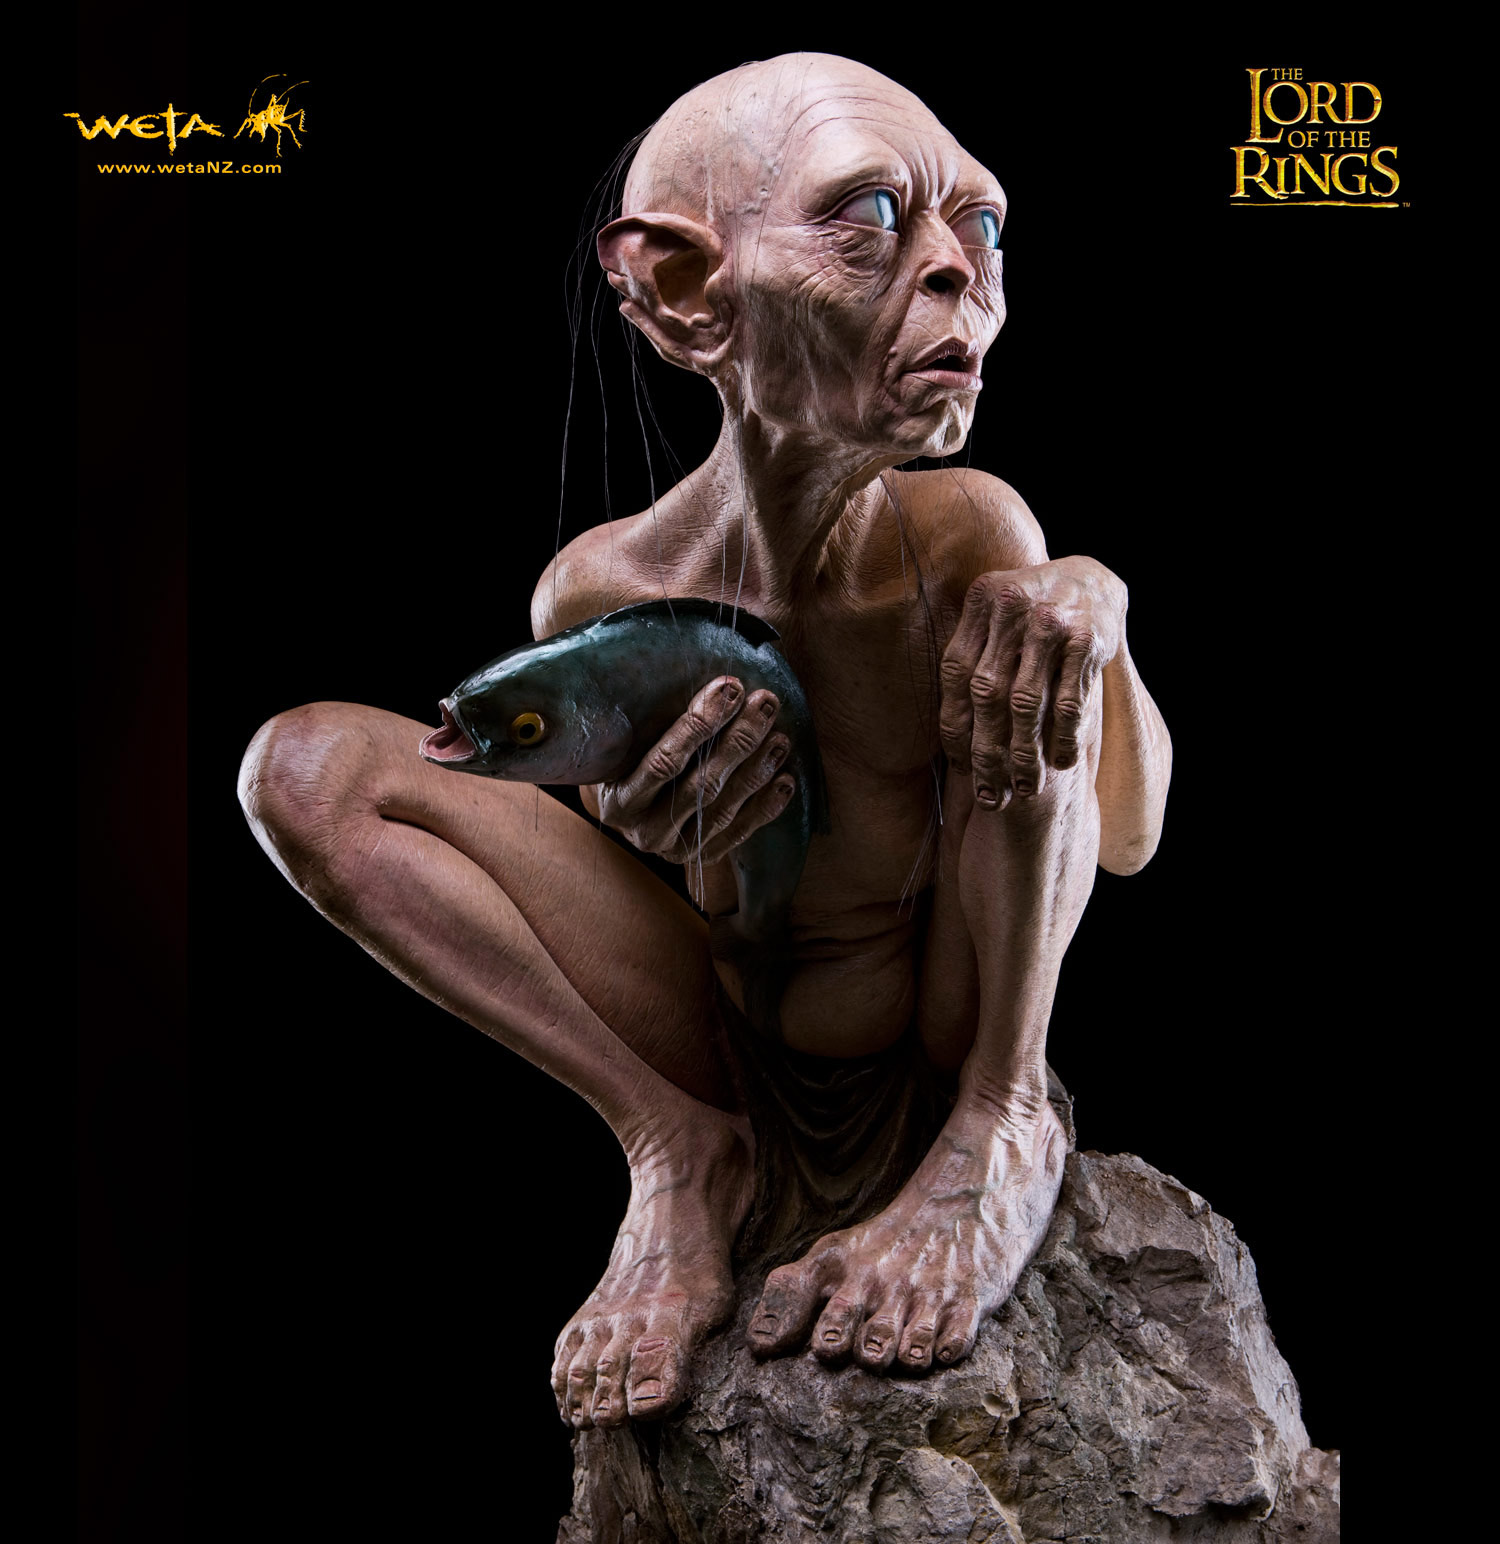 Lord of the Rings Life-Size Statue Gollum 140 cm